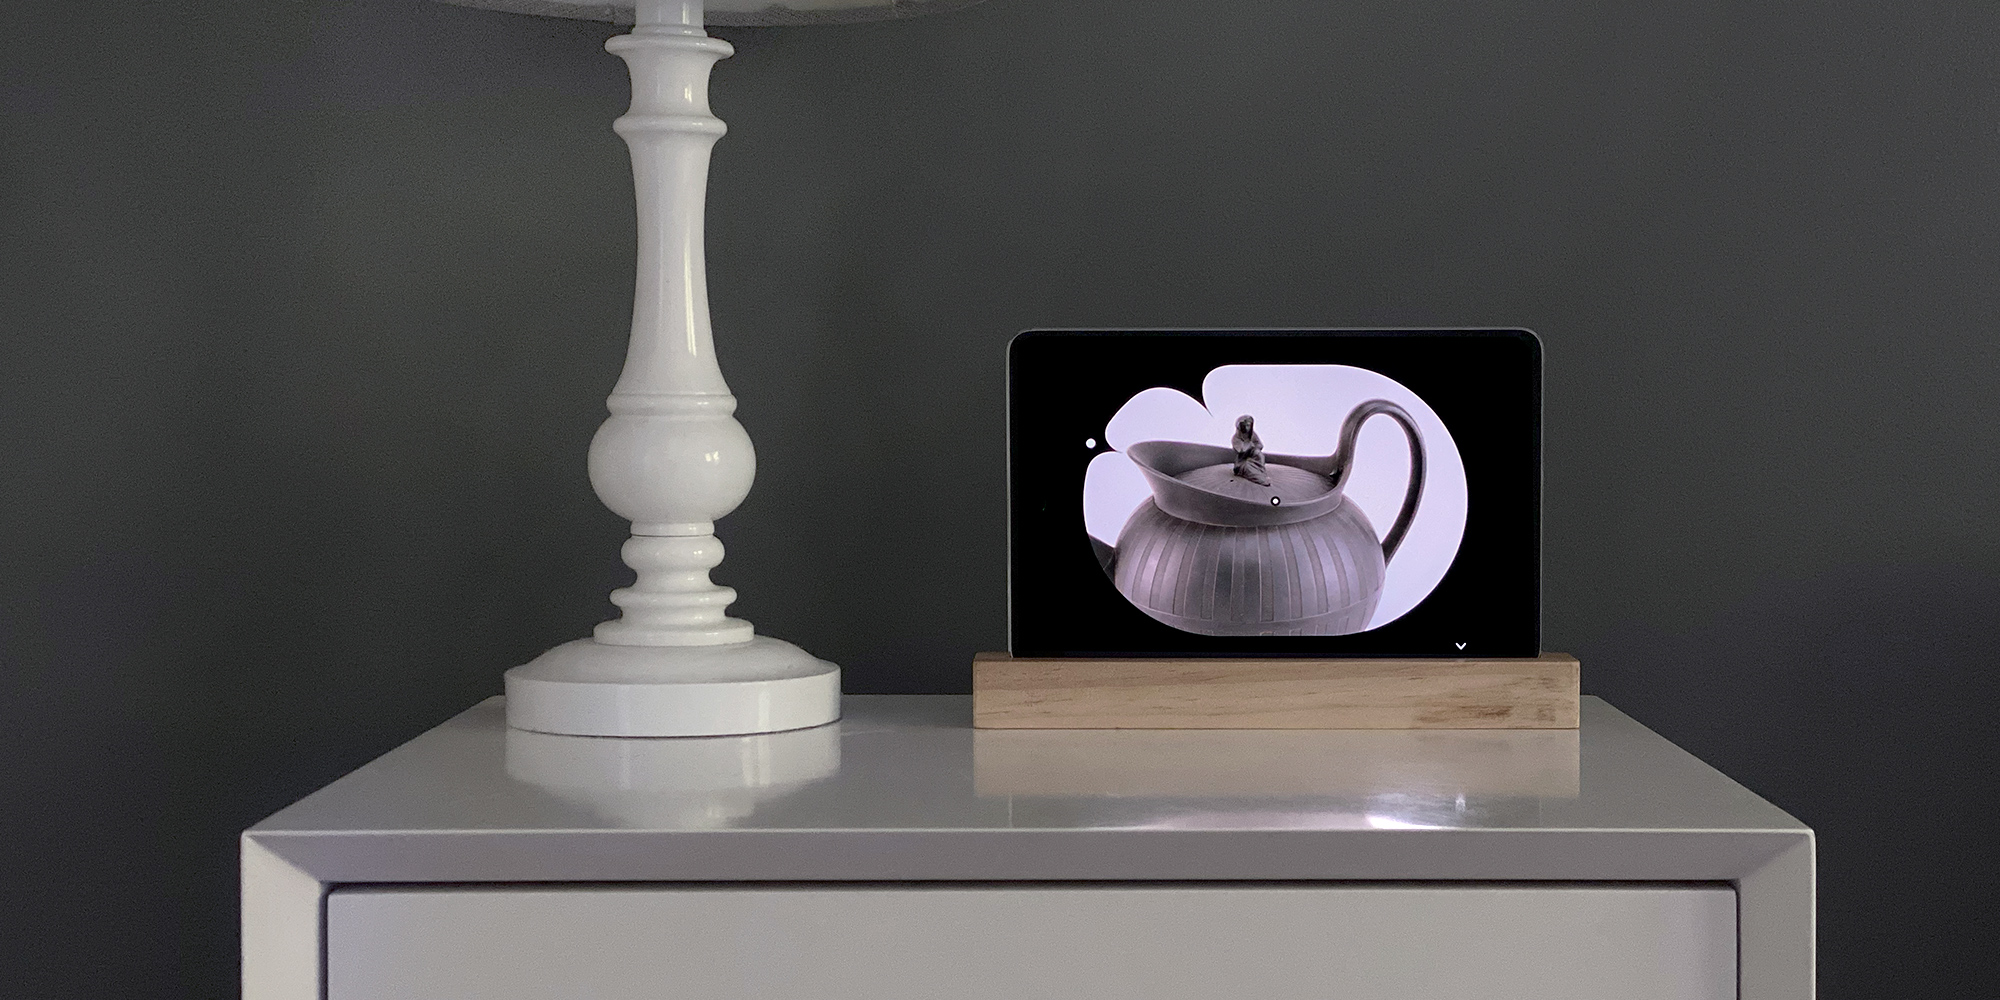 A rendering of a bedside table with a digital screen on a pedestal showing a picture of a teapot with a minimalist clock shape aligned with the teapot's spot